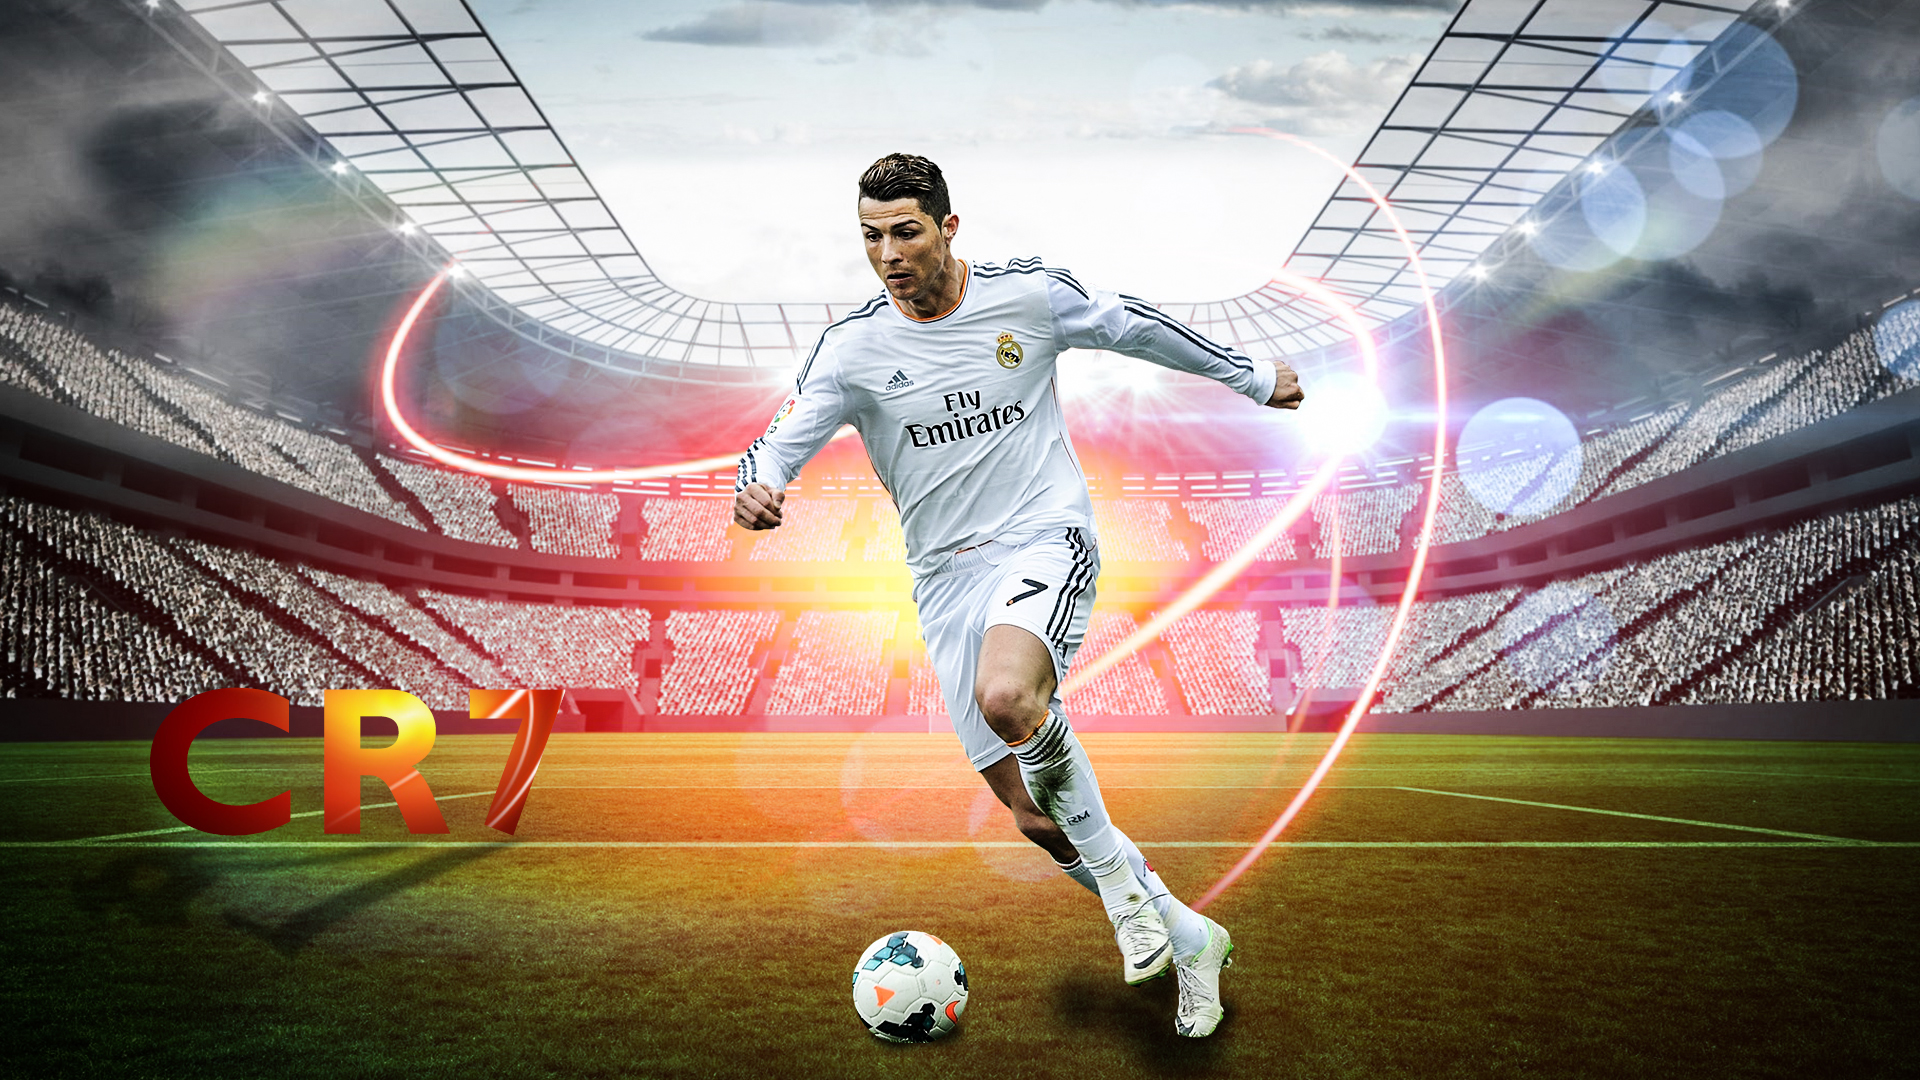 Cristiano ronaldo hd wallpapers - C ronaldo wallpaper portugal ...